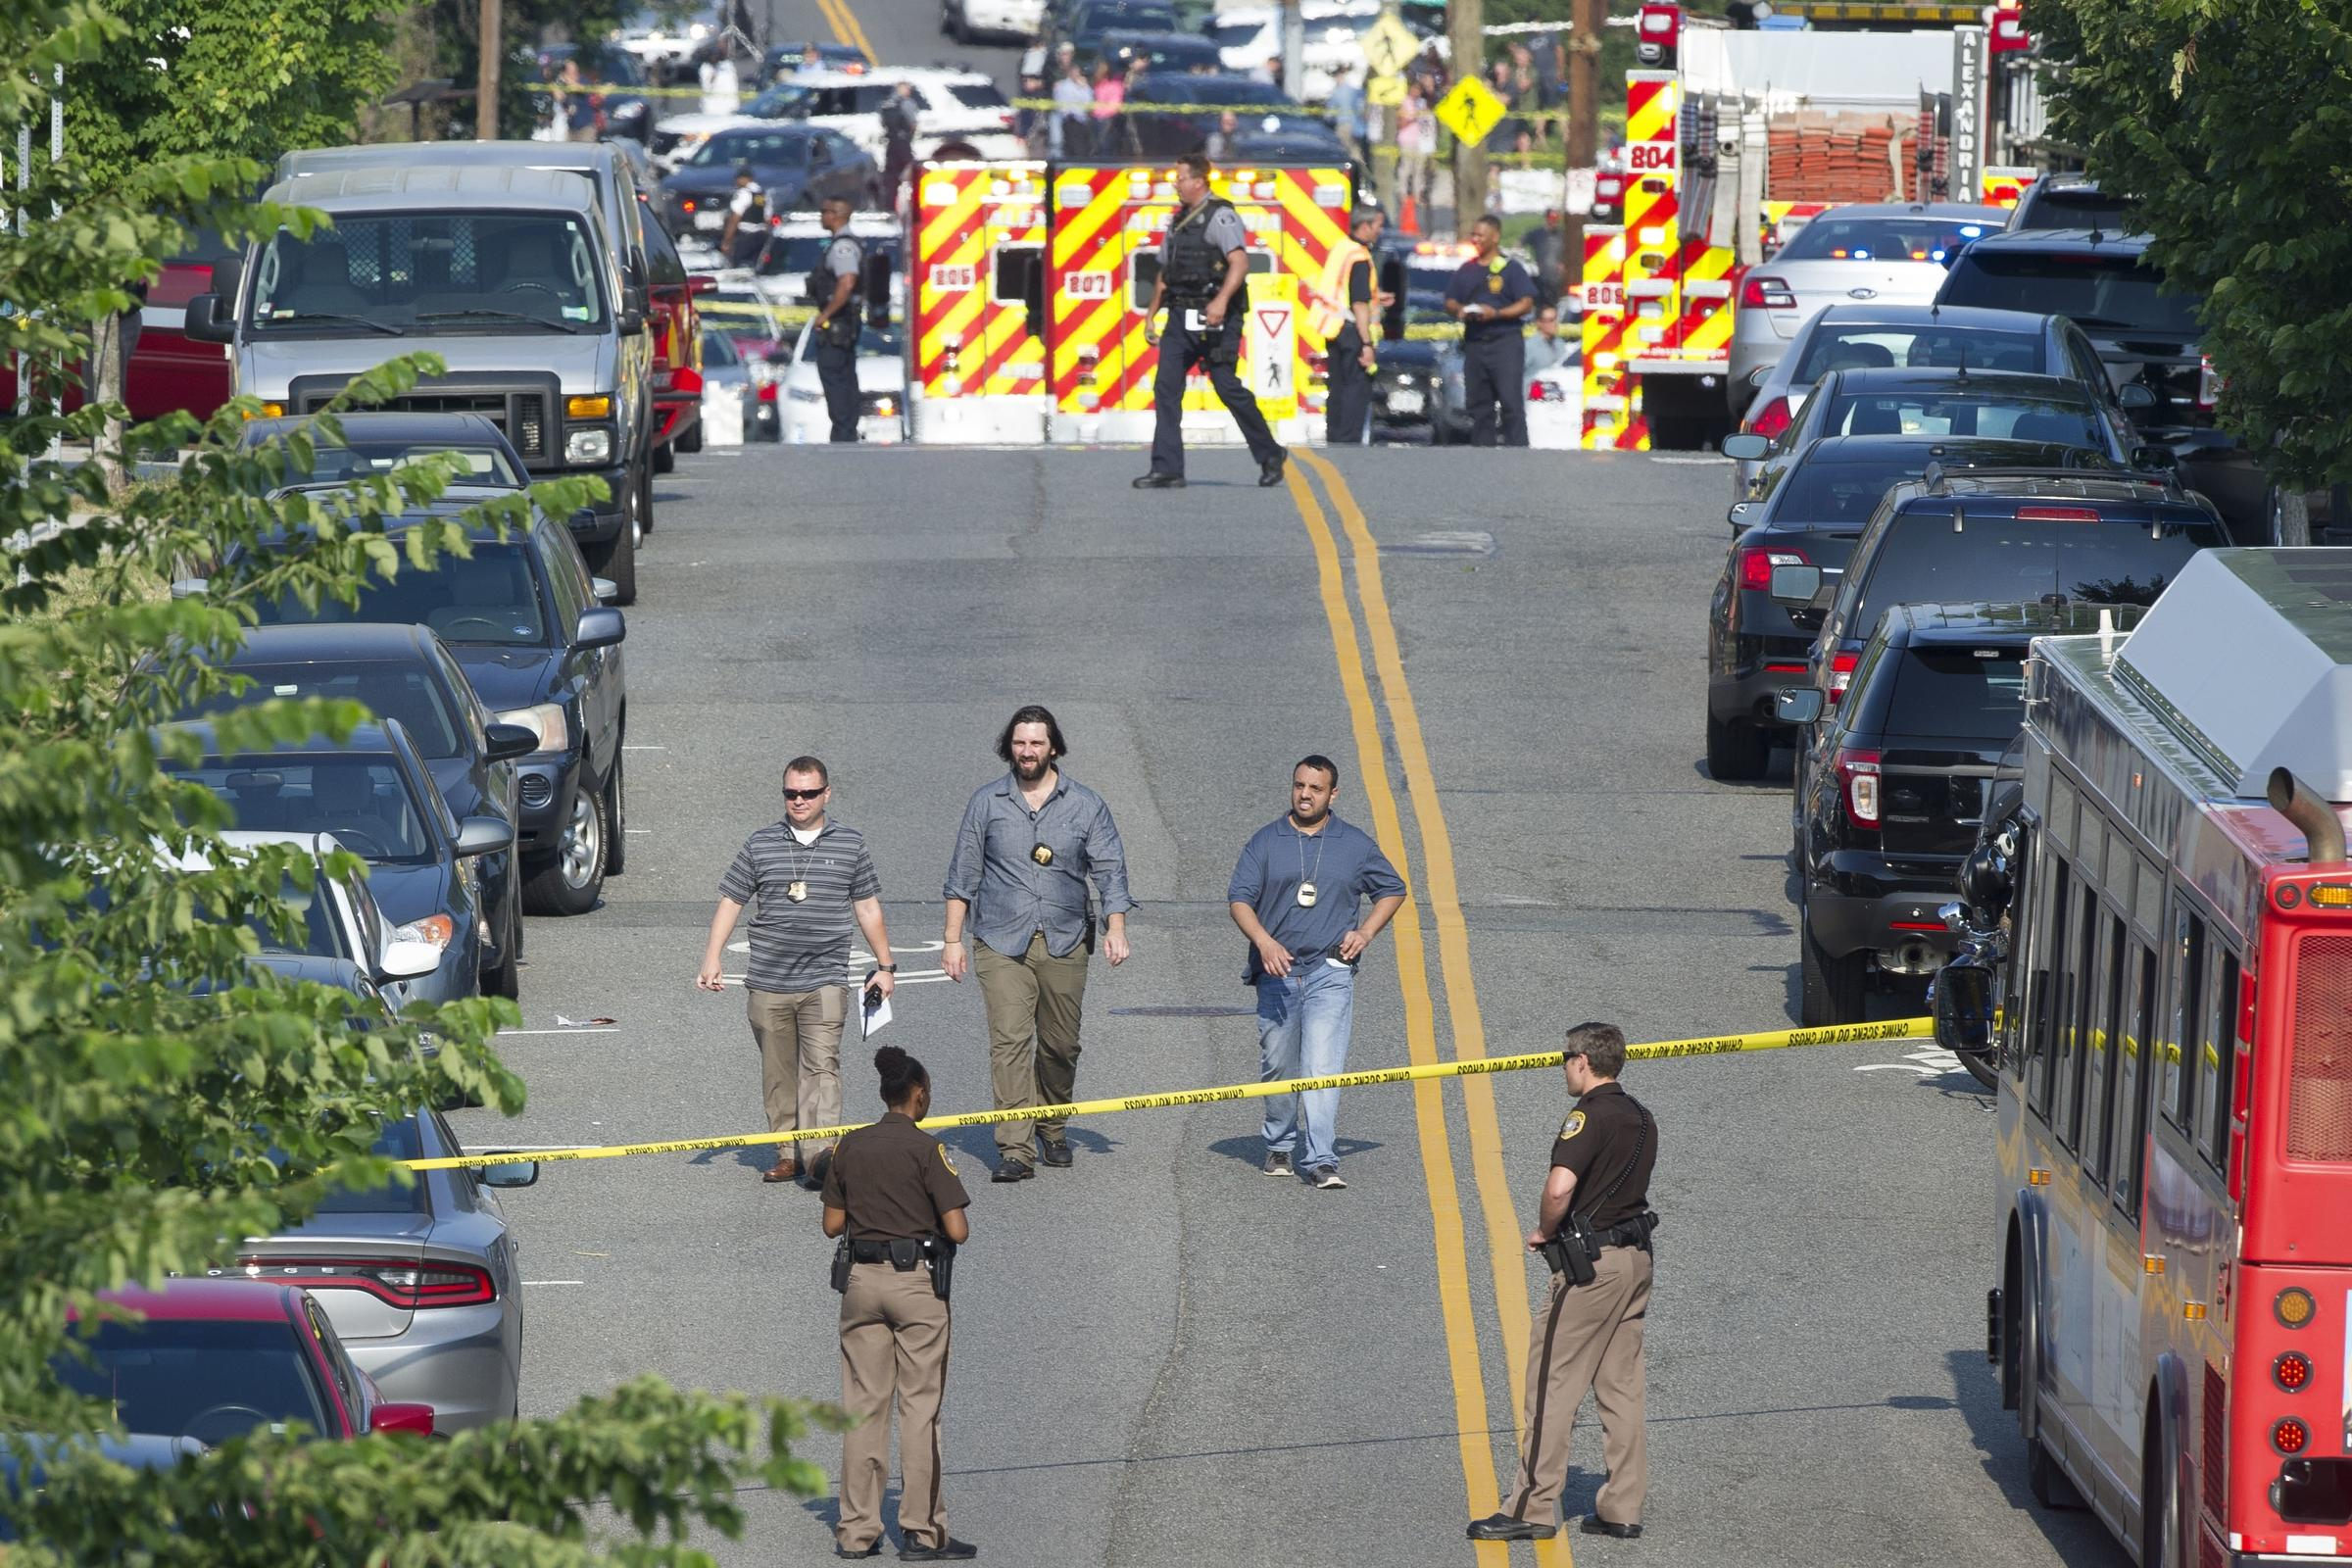 Alexandria shooting victims: Scalise, police officers, 2 others wounded